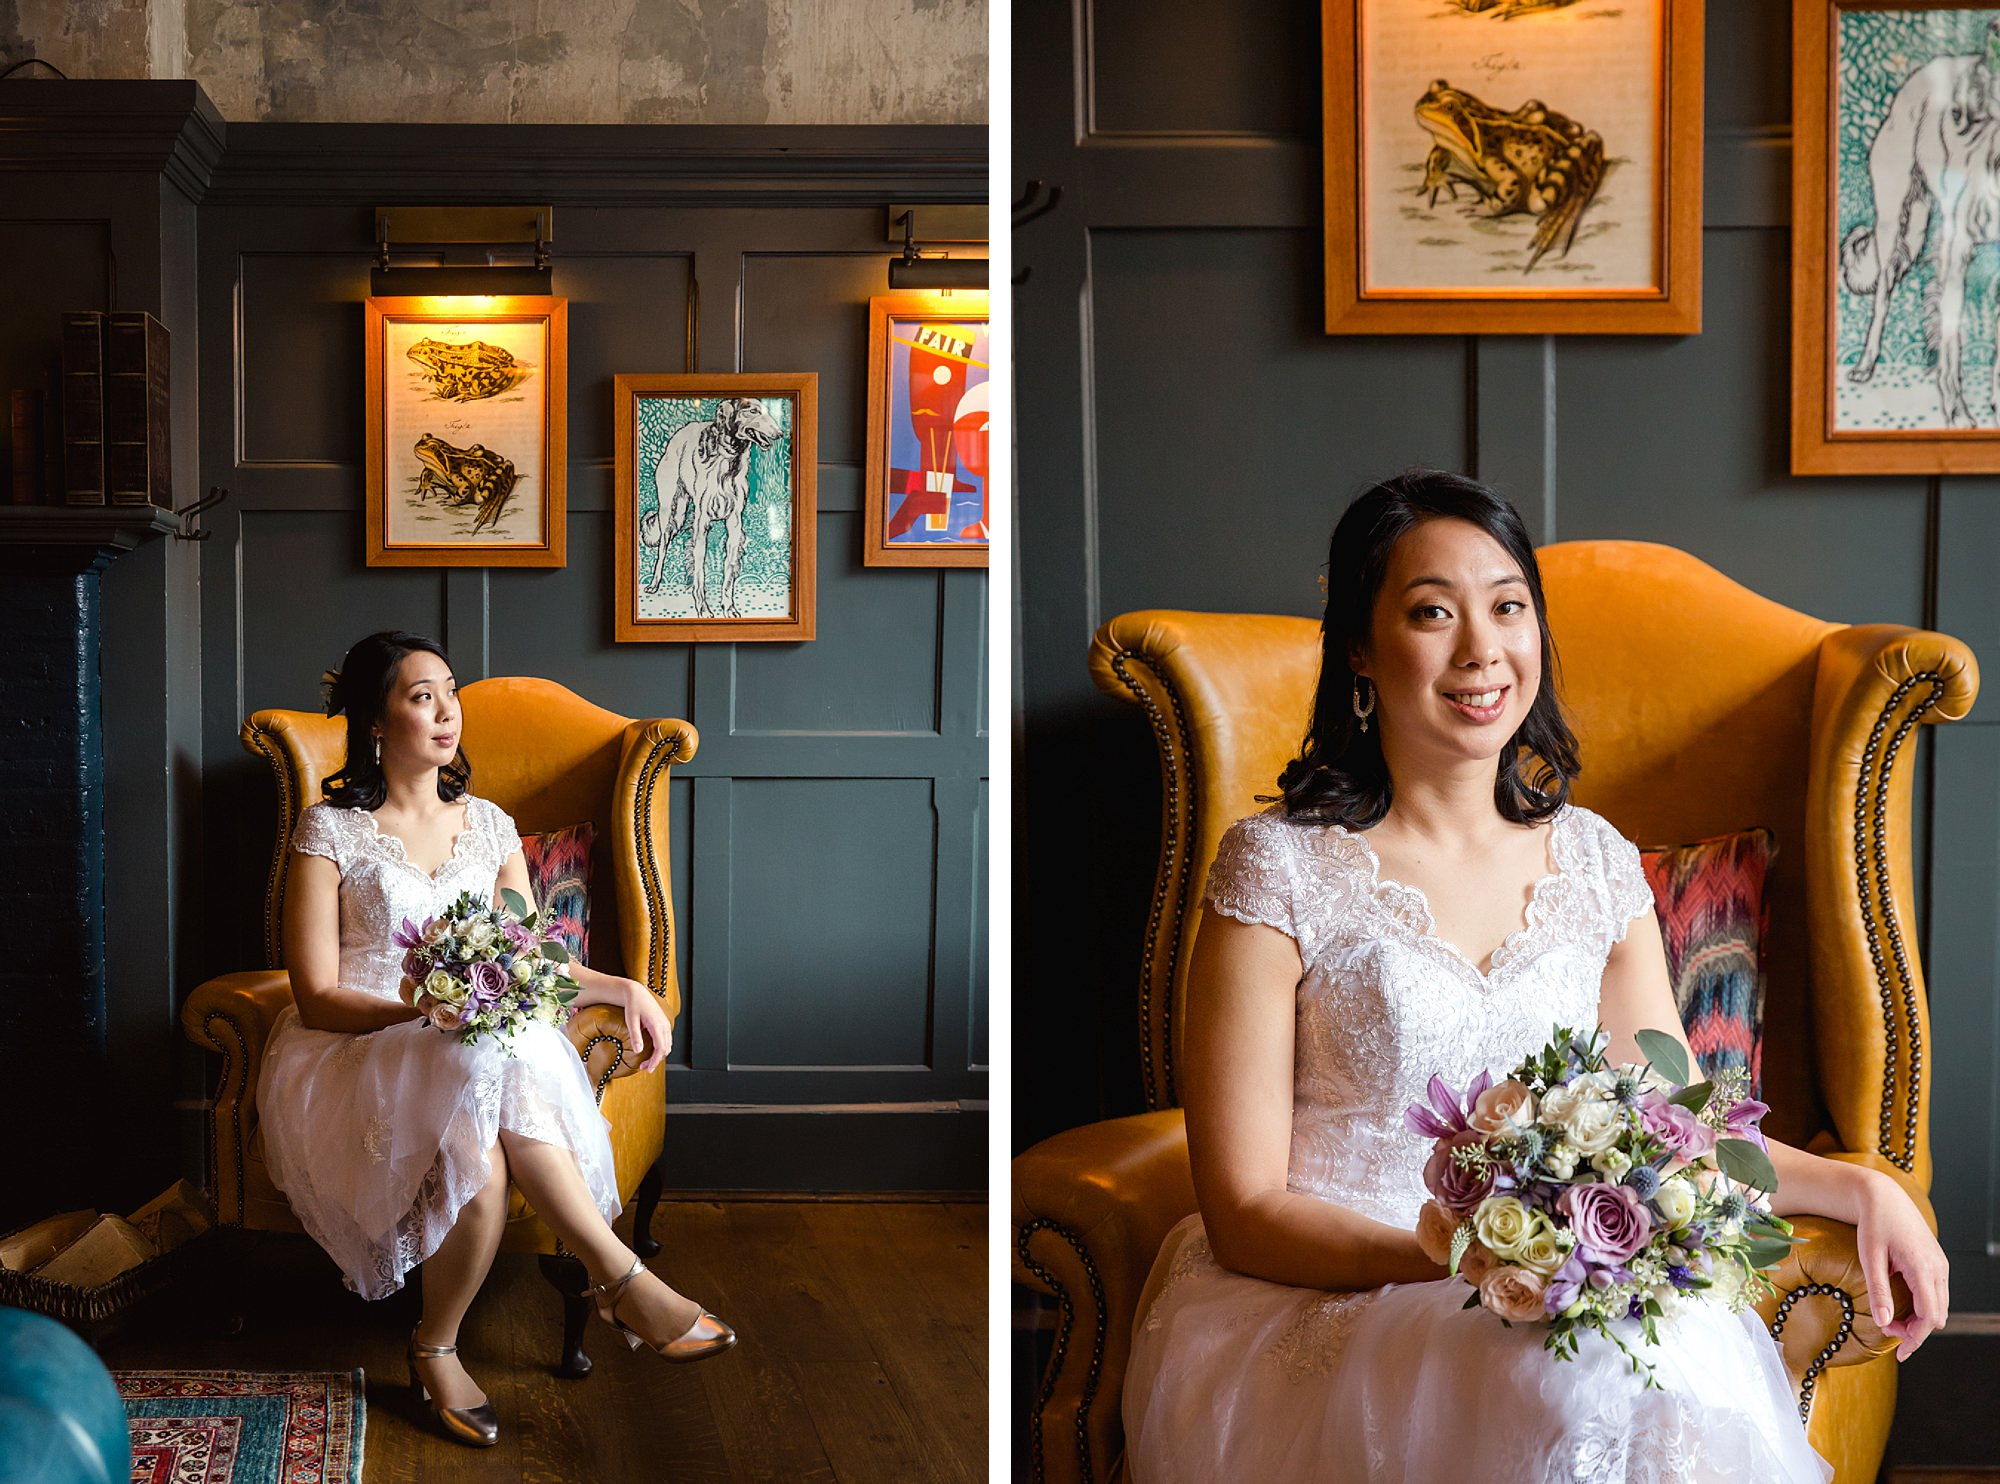 Wandsworth pub wedding portrait of bride